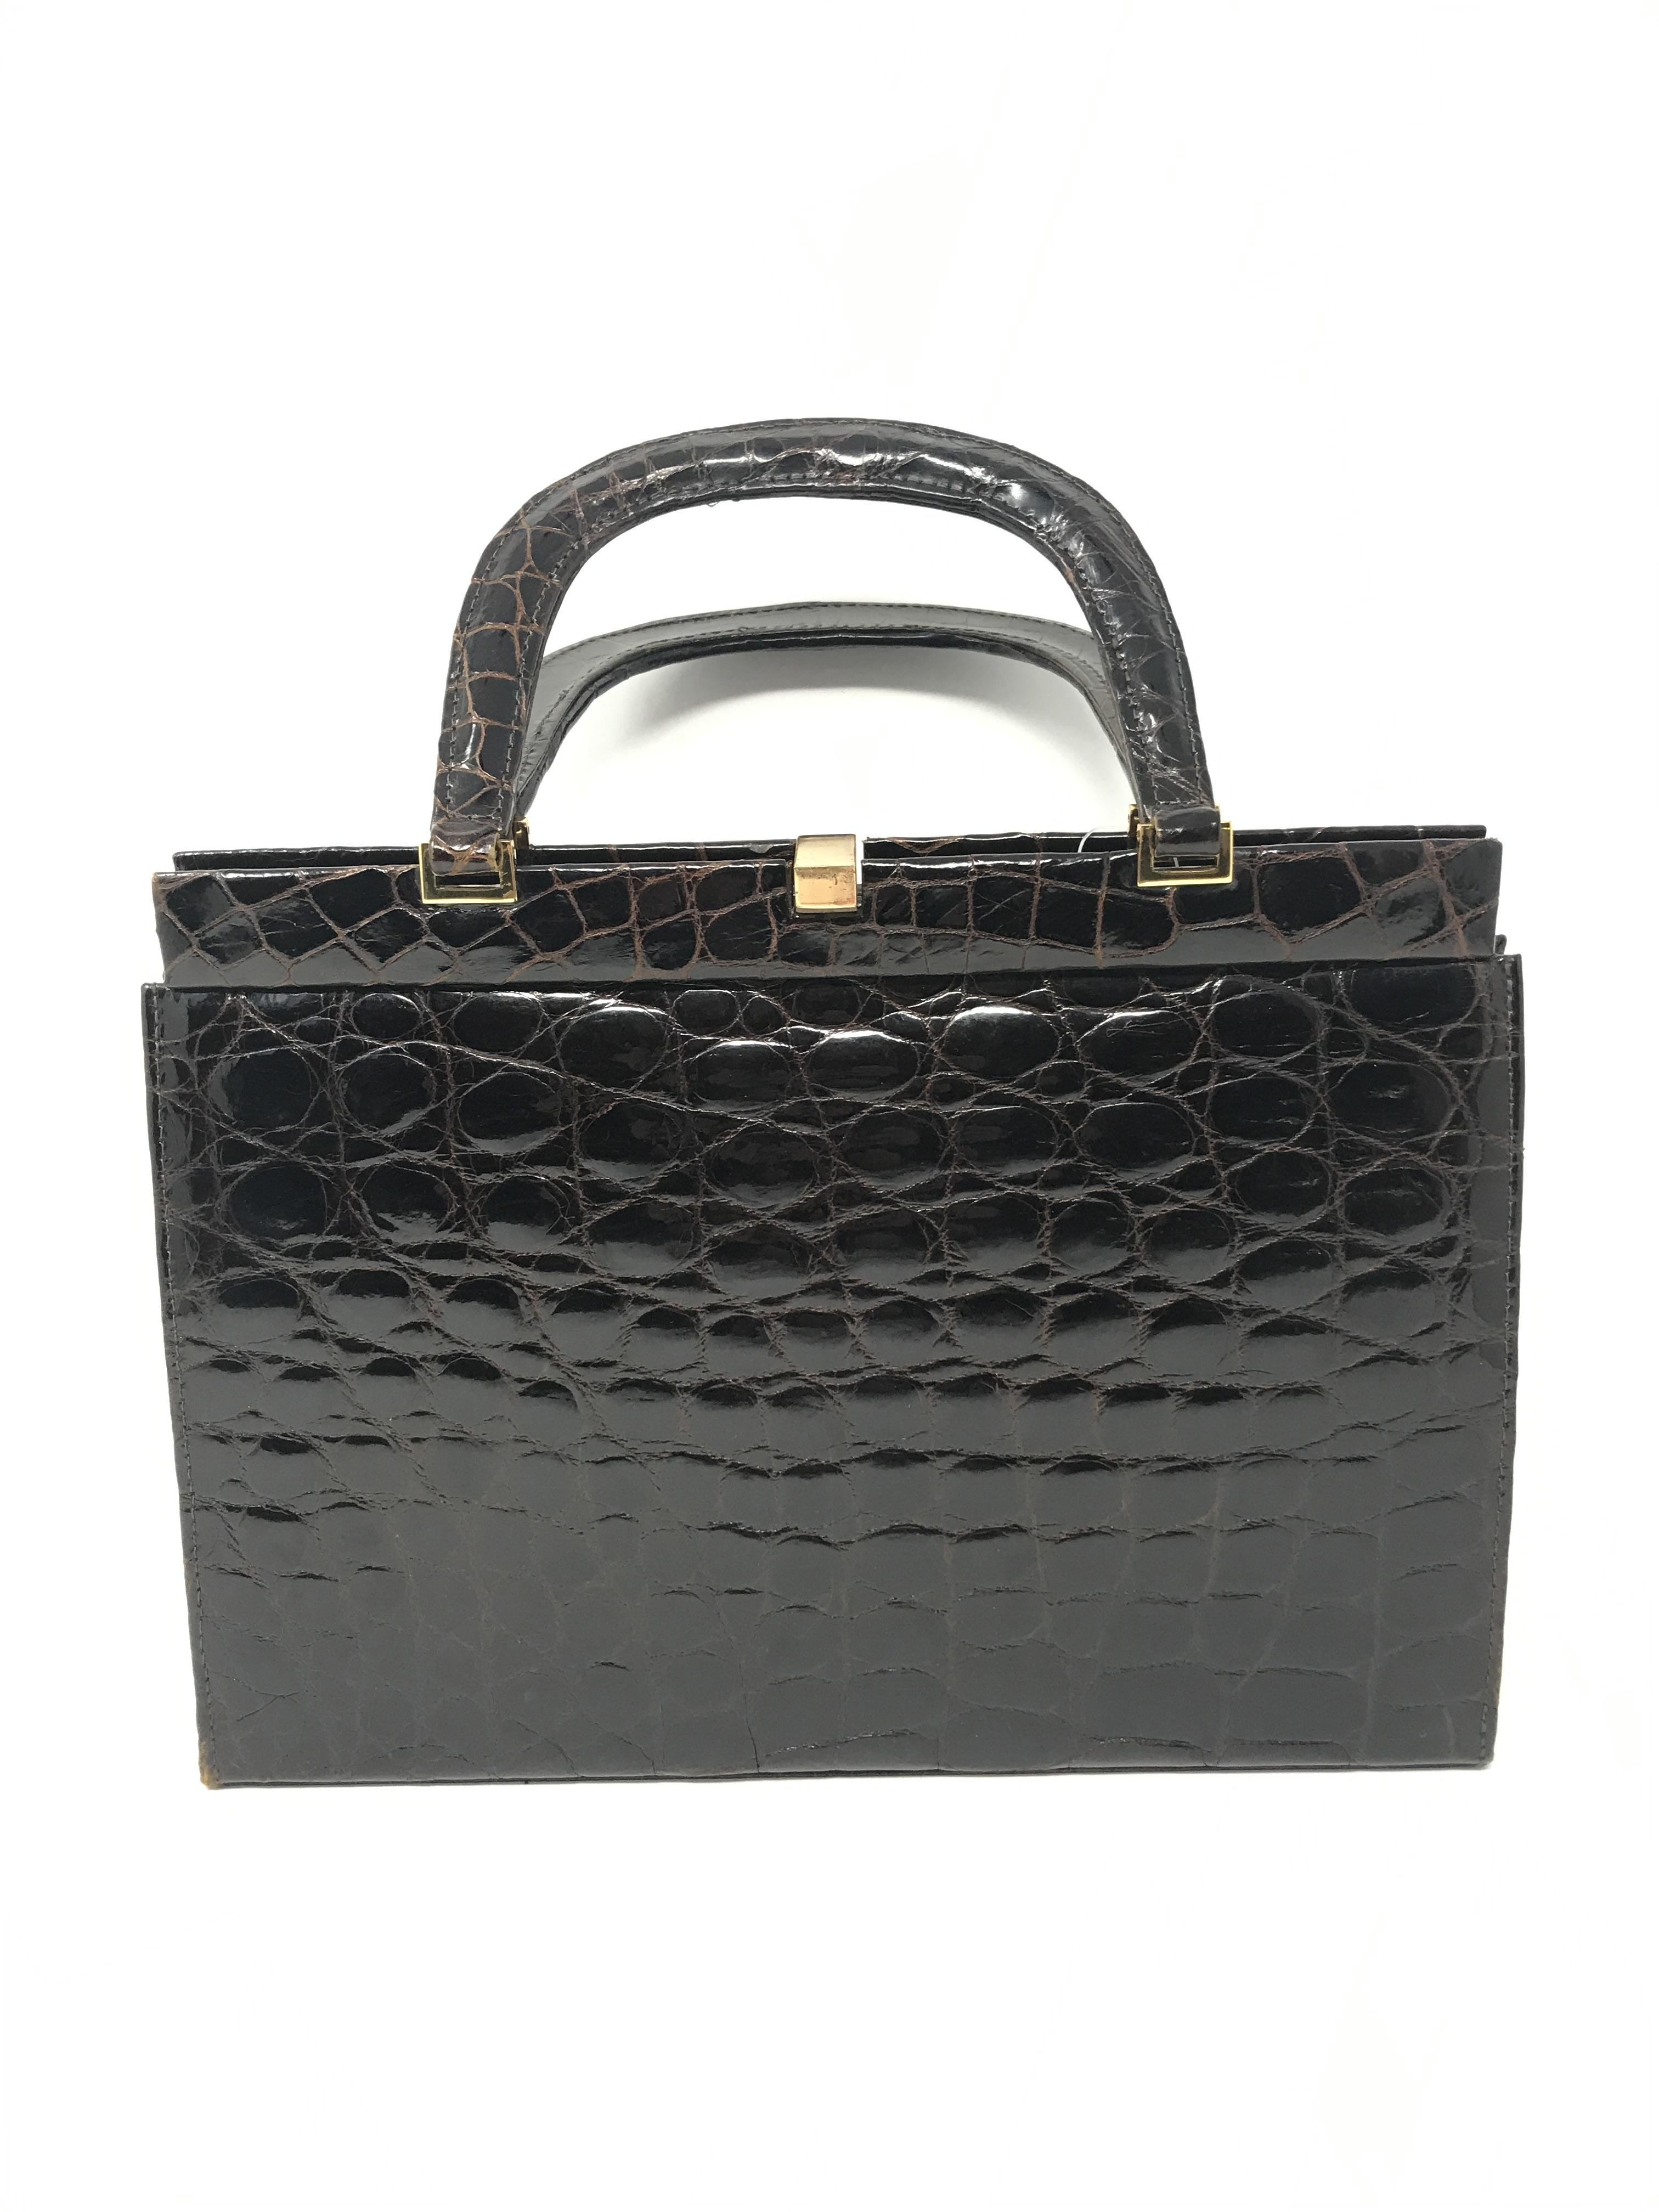 Vintage croc Purses, Handbags Price: $267.99